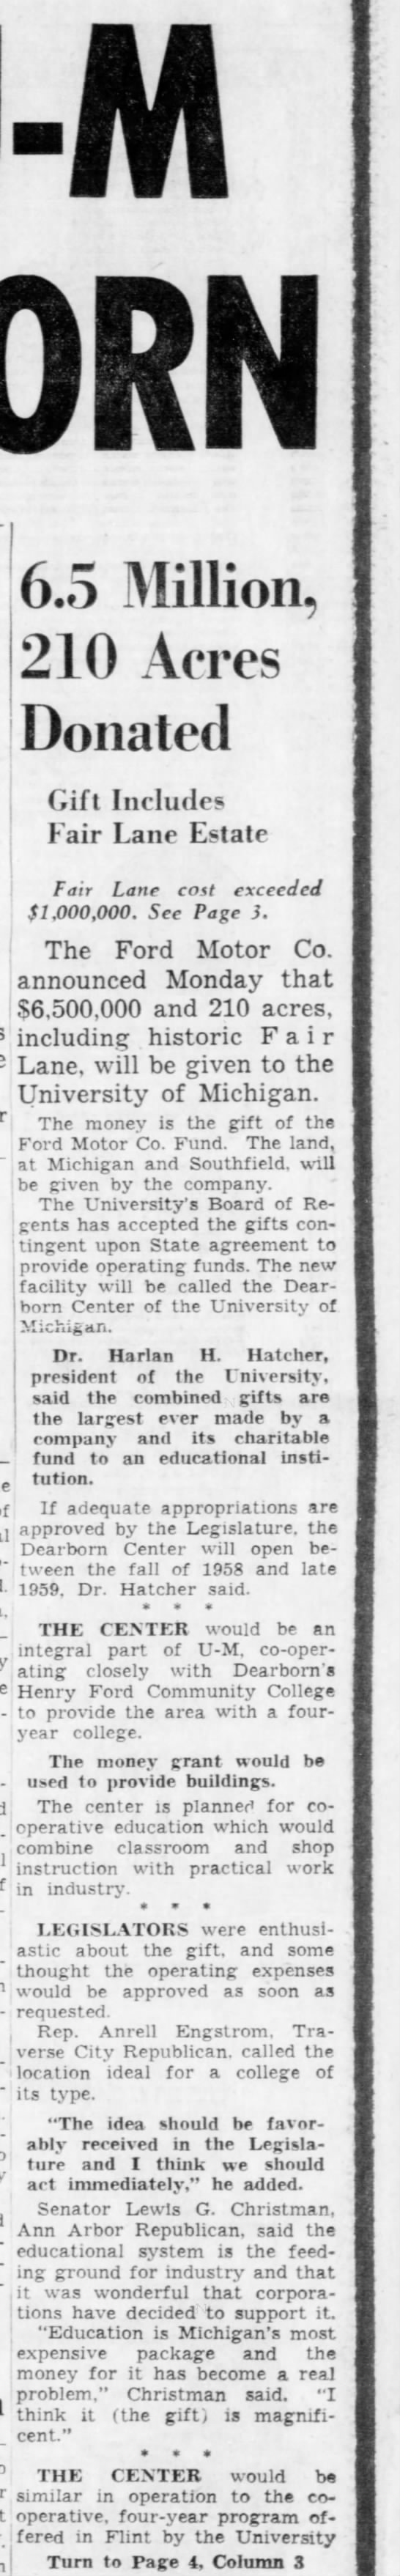 * December - Ford Motor Co. donated $6.5 million and 210 acres of land in [[Dearborn, Michigan]], to -